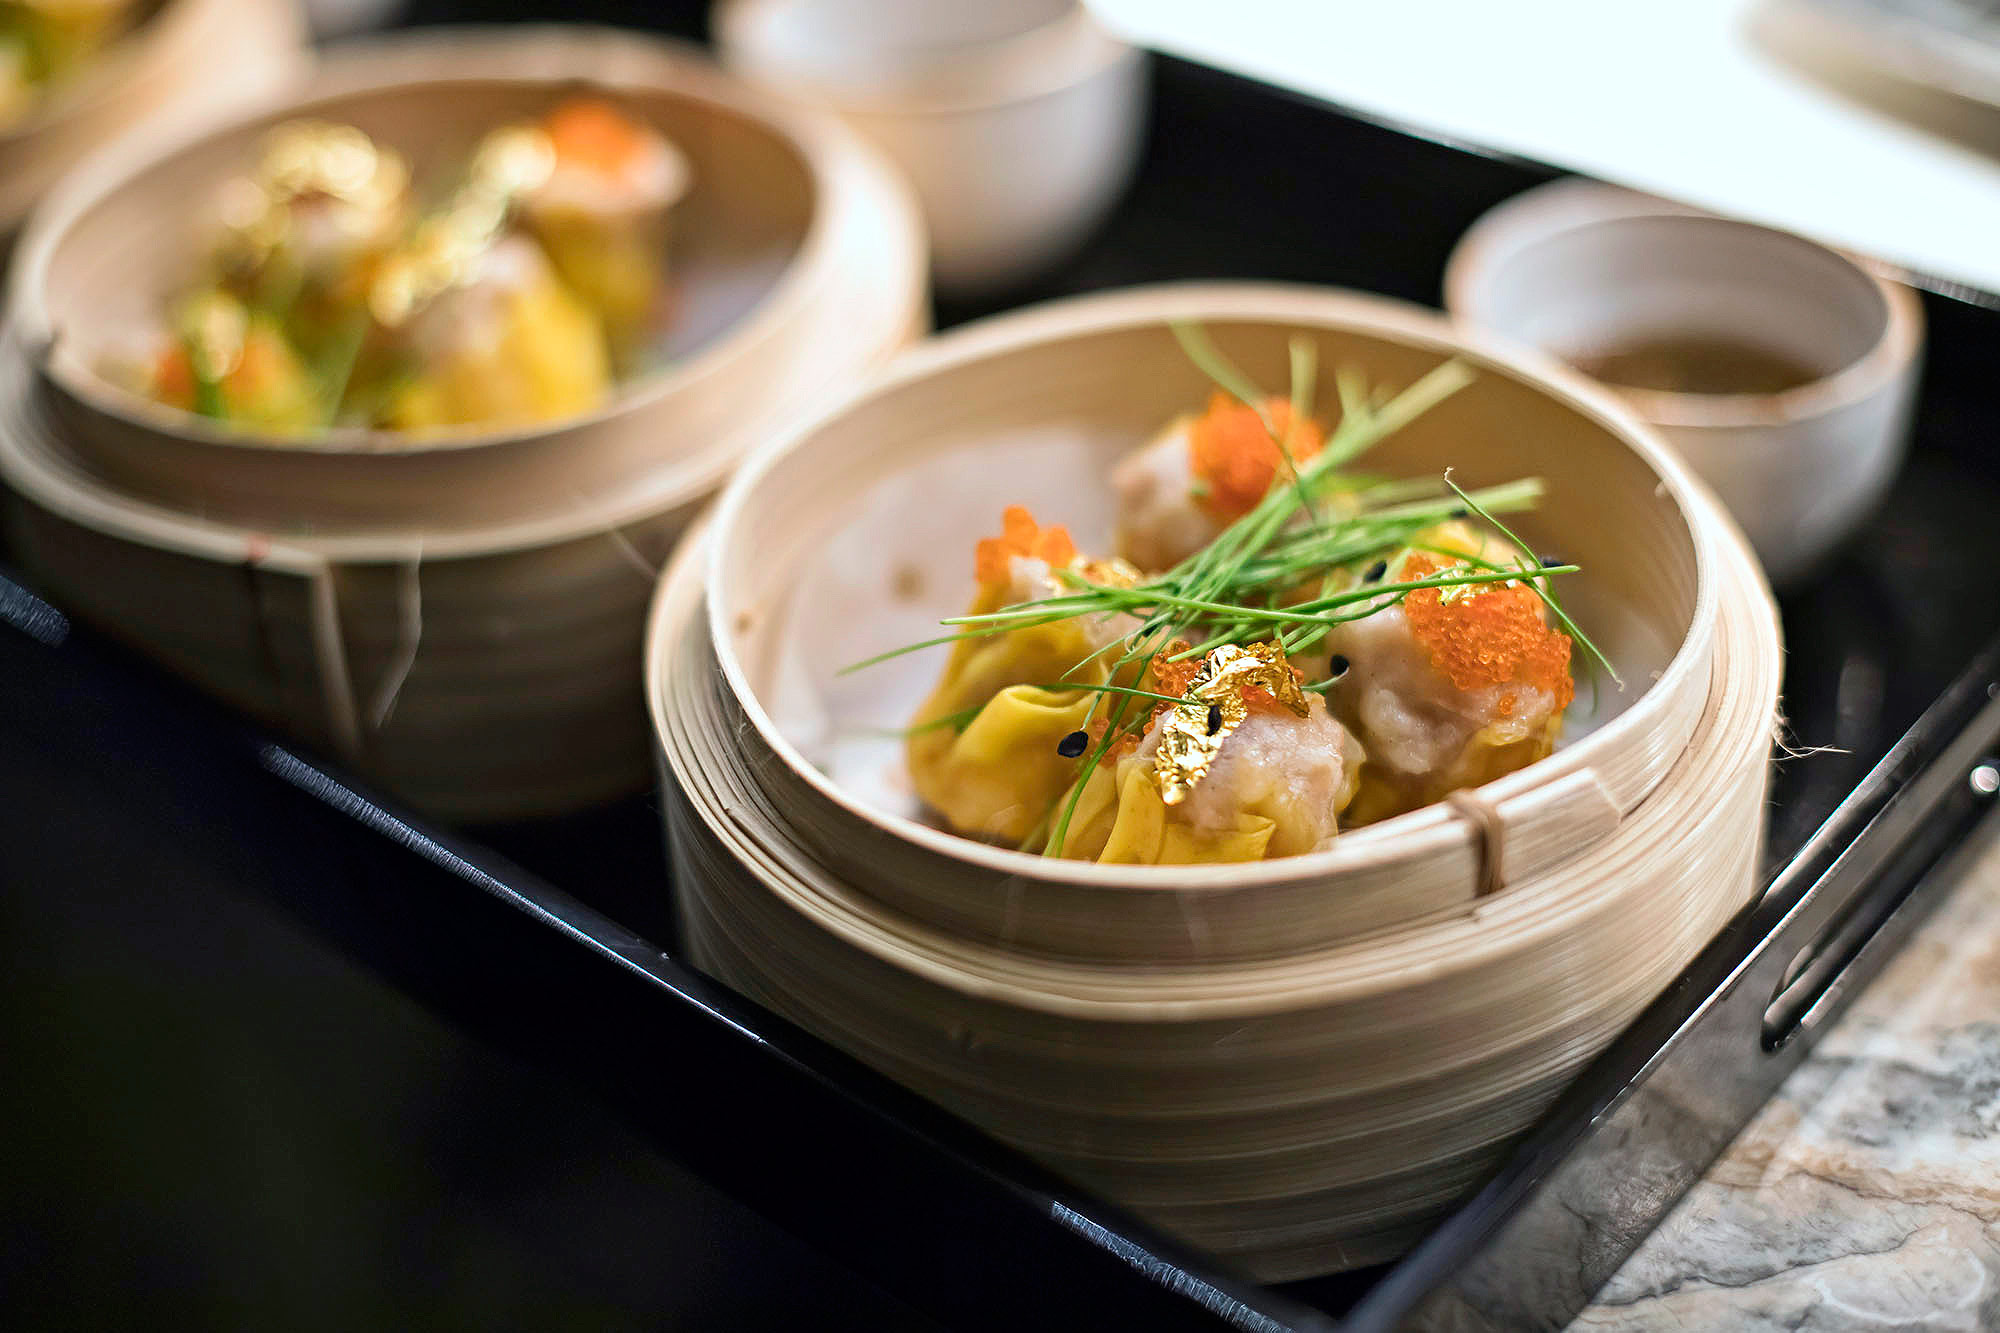 Pork & Prawn, Scallop Moneybag dumpings